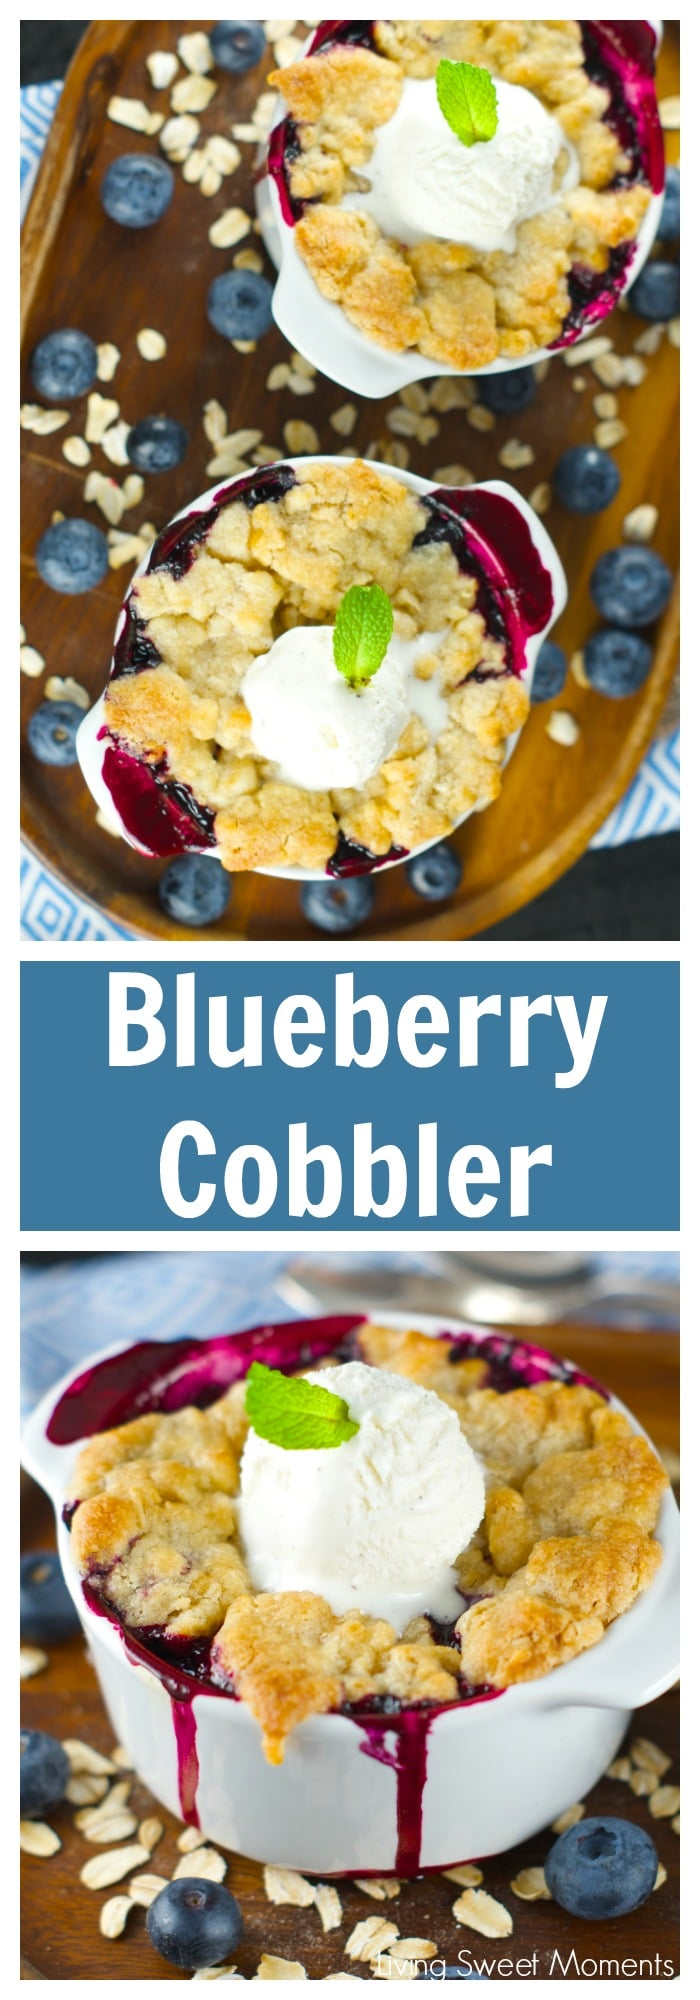 Blueberry Cobbler – A Warm delicious dessert that's tangy and sweet at the same time. Serve with a dollop of vanilla ice cream and you'll be in heaven. Yum!